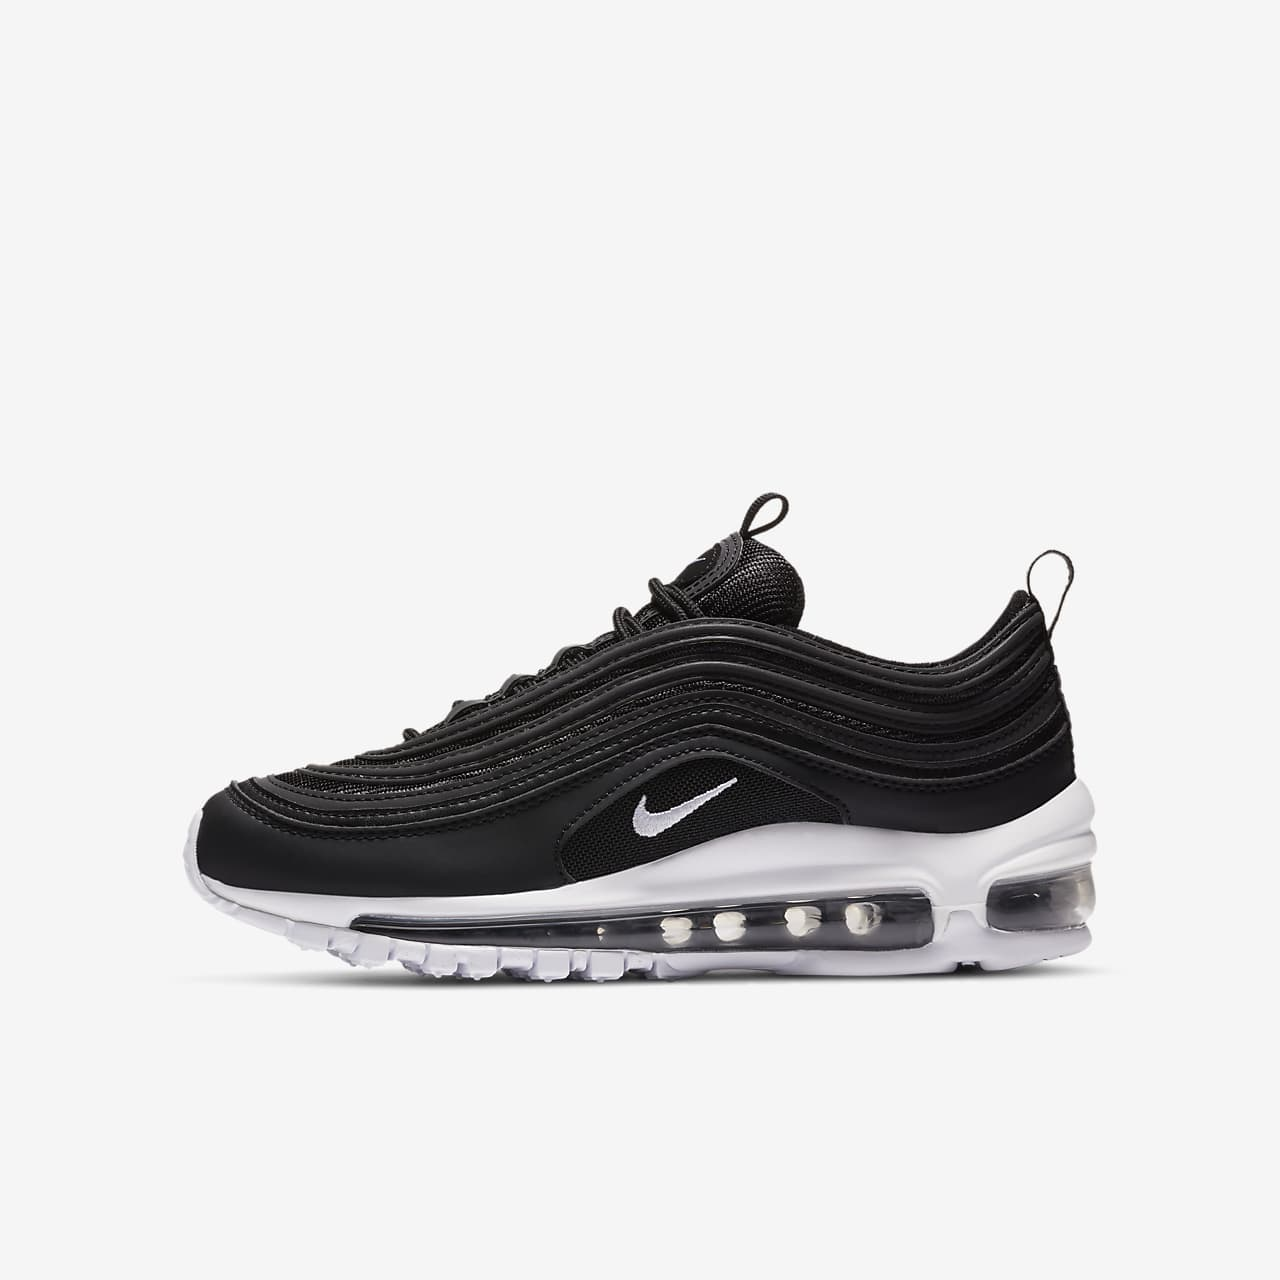 Nike Air Max 97 Grey Suede Premium